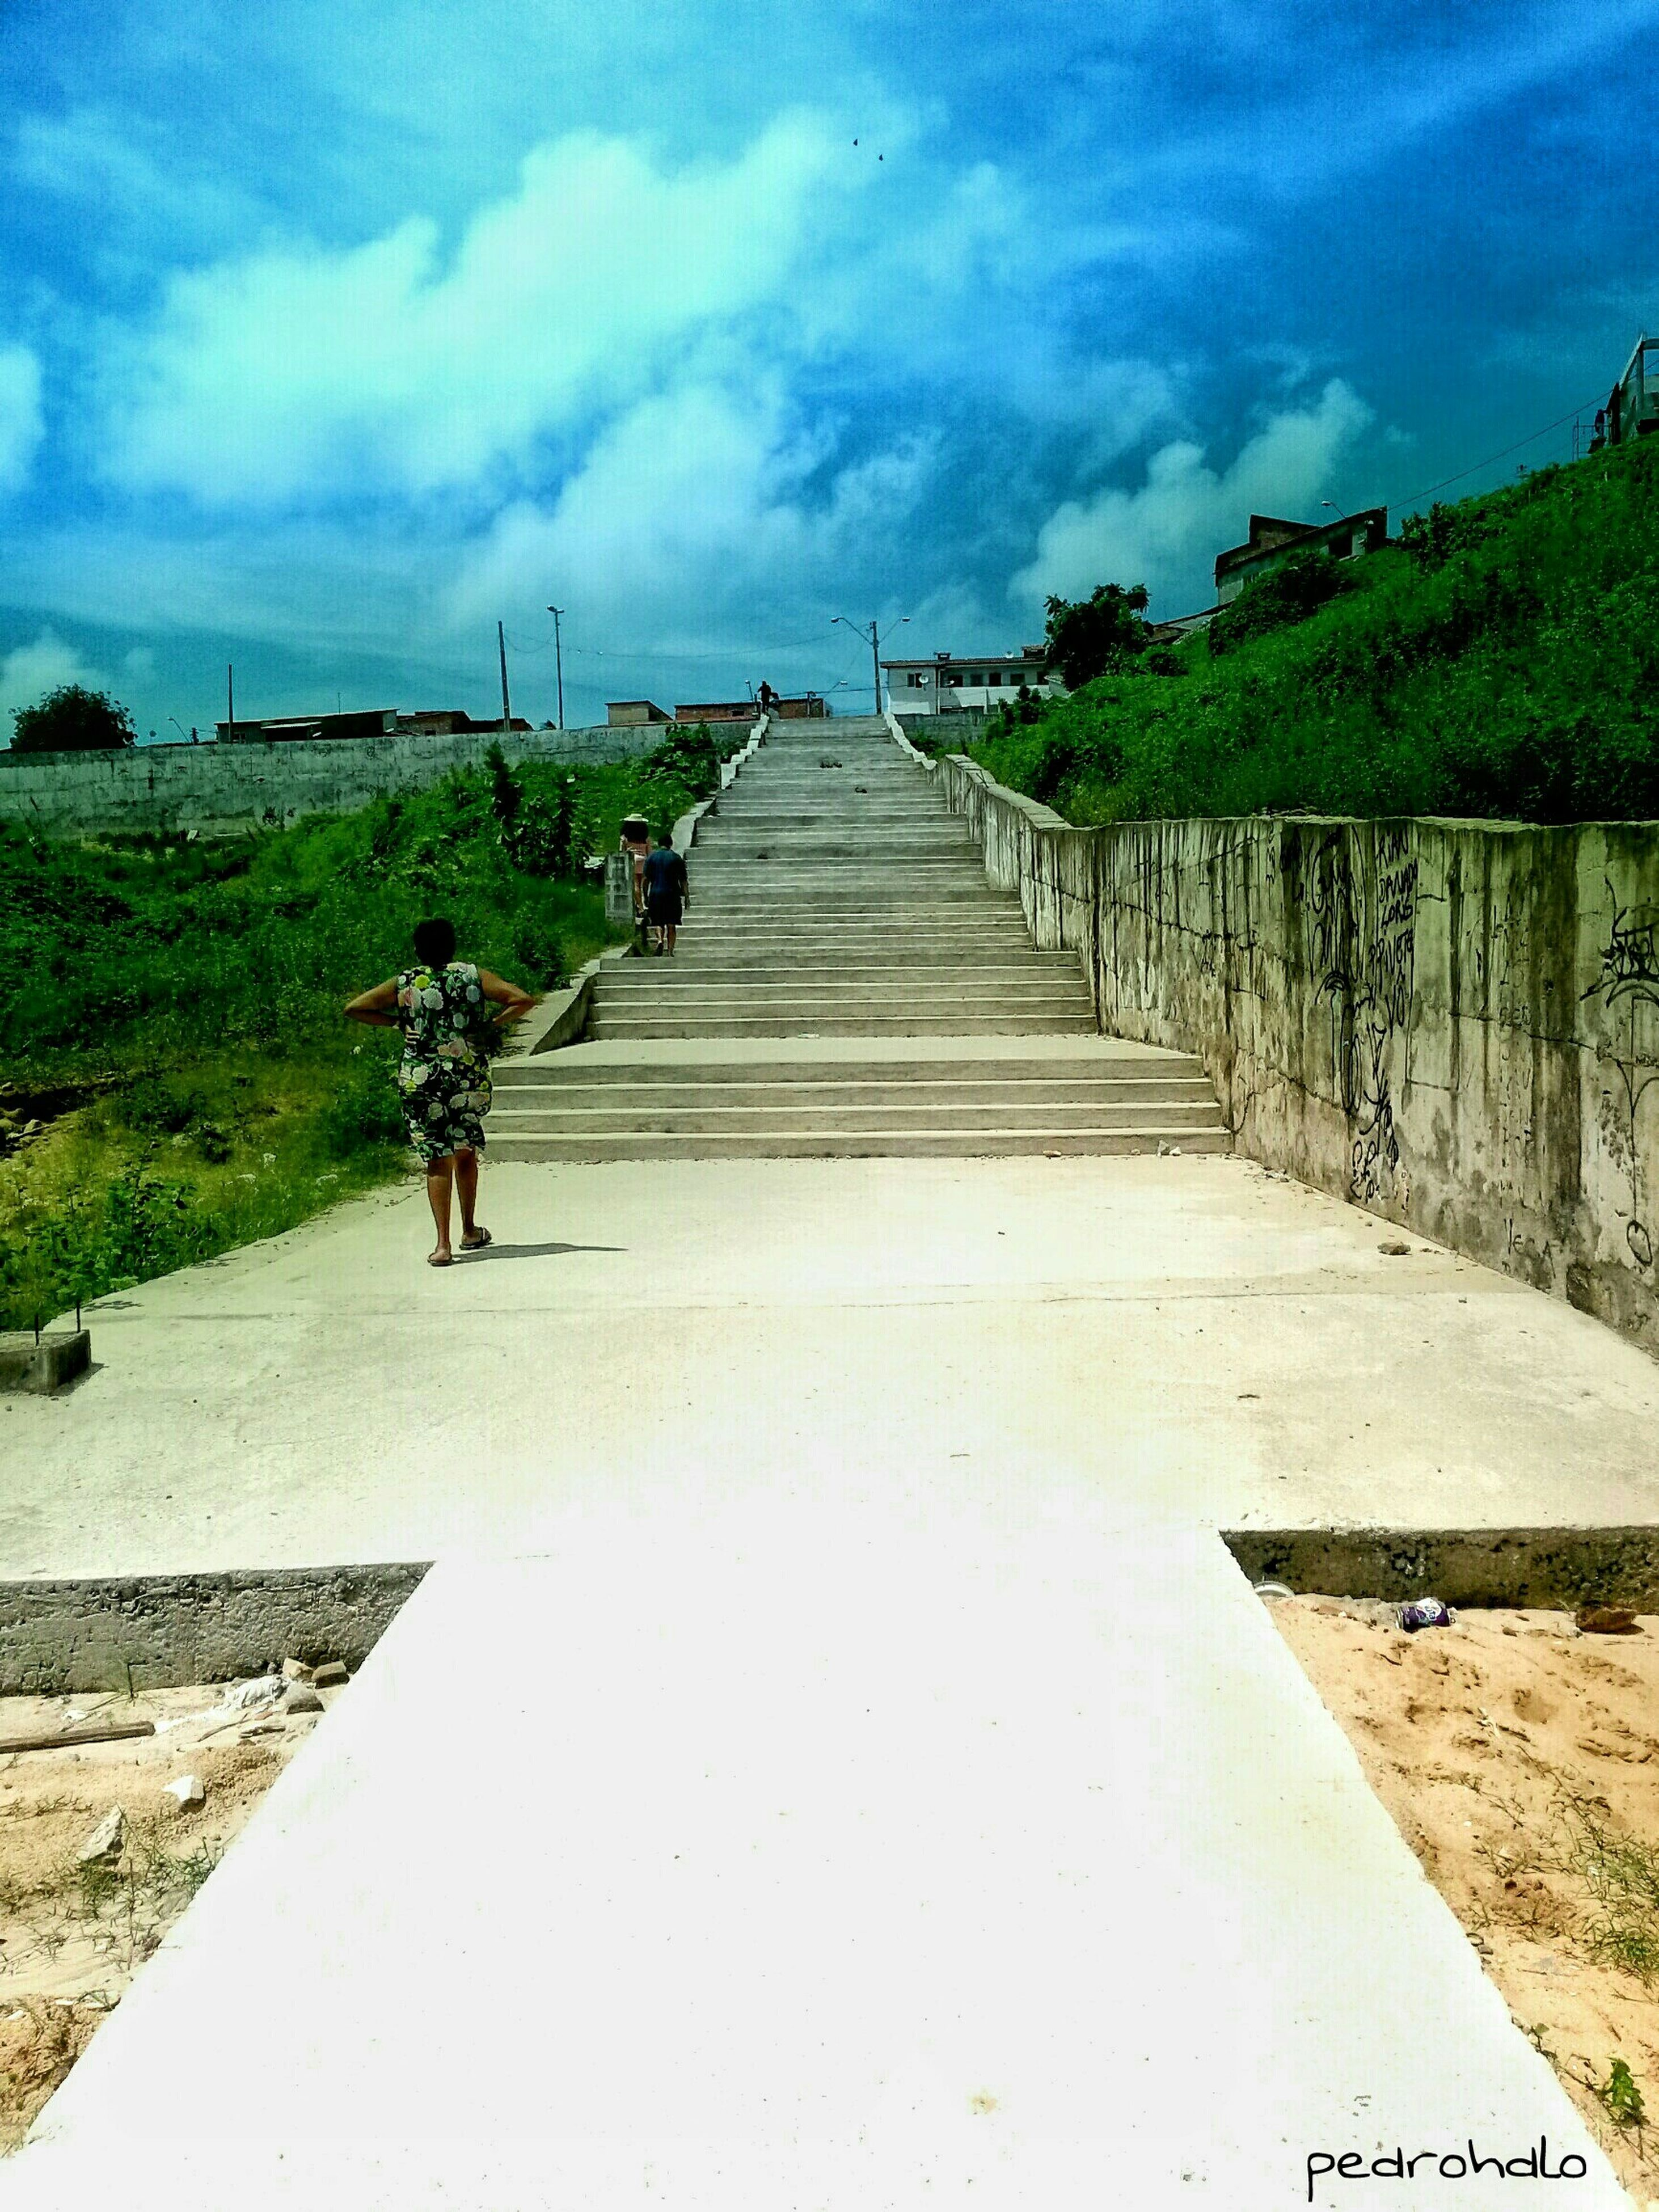 the way forward, sky, diminishing perspective, vanishing point, cloud - sky, built structure, tree, steps, cloud, leading, architecture, long, blue, empty, steps and staircases, pathway, footpath, walkway, cloudy, day